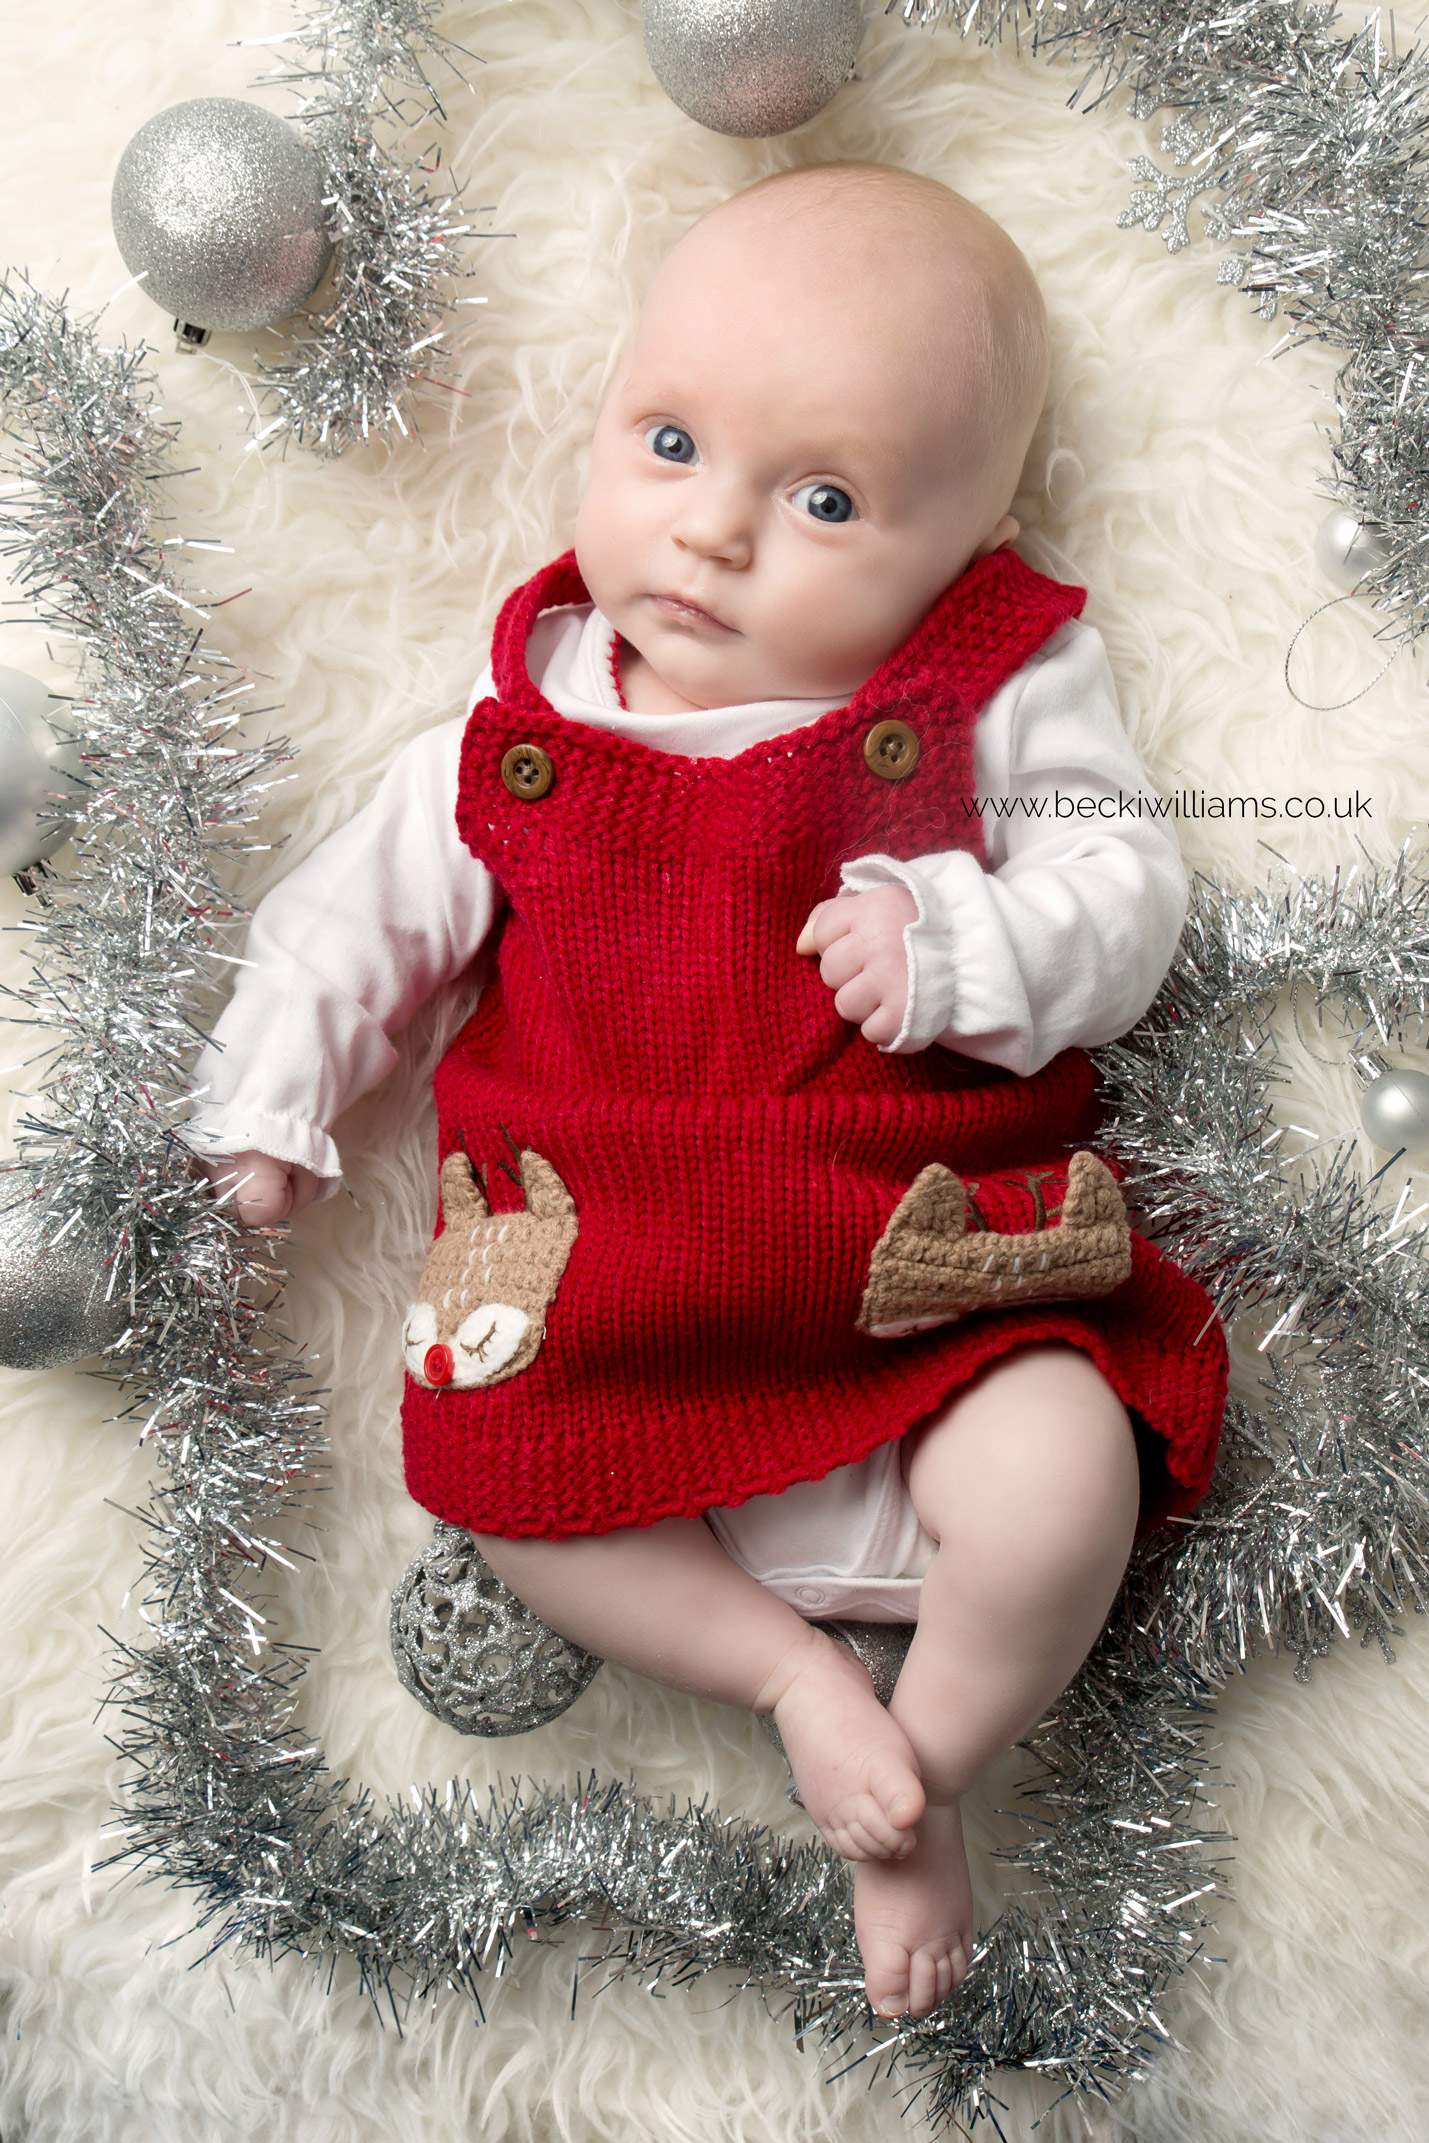 Christmas photo of a 2 month old baby